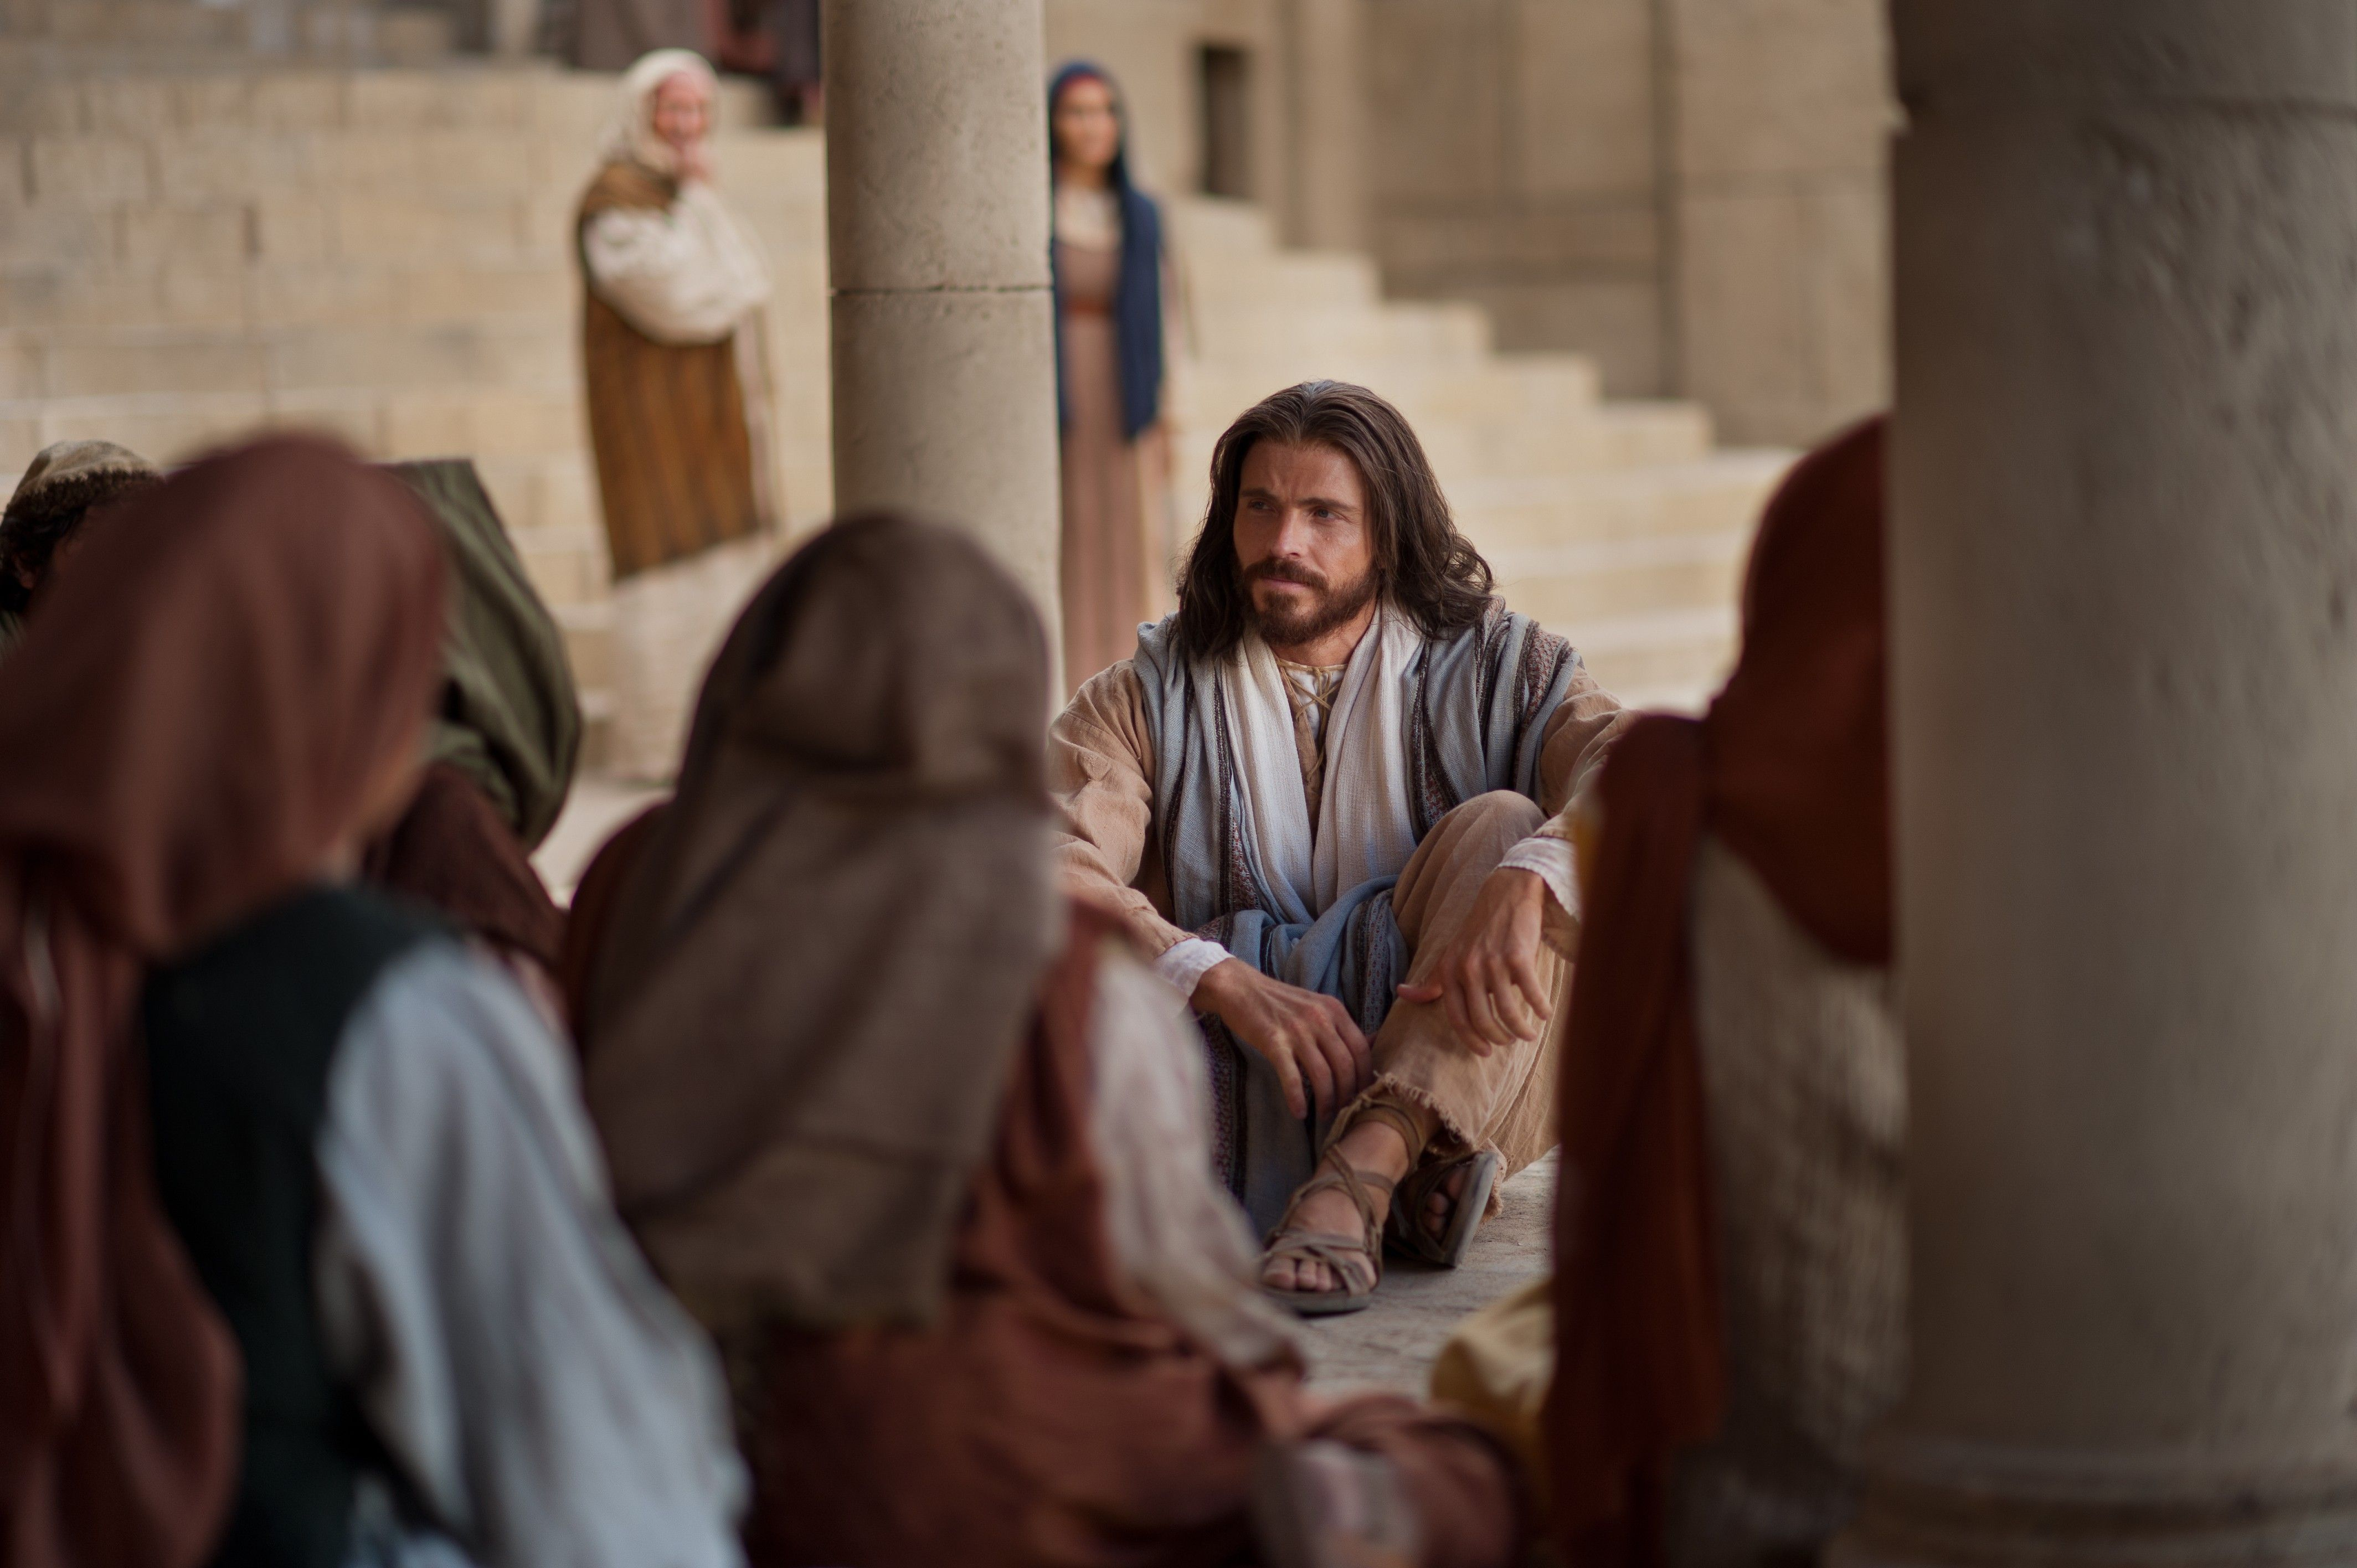 """Christ teaching a group of people to turn the other cheek instead of living by """"an eye for an eye."""""""